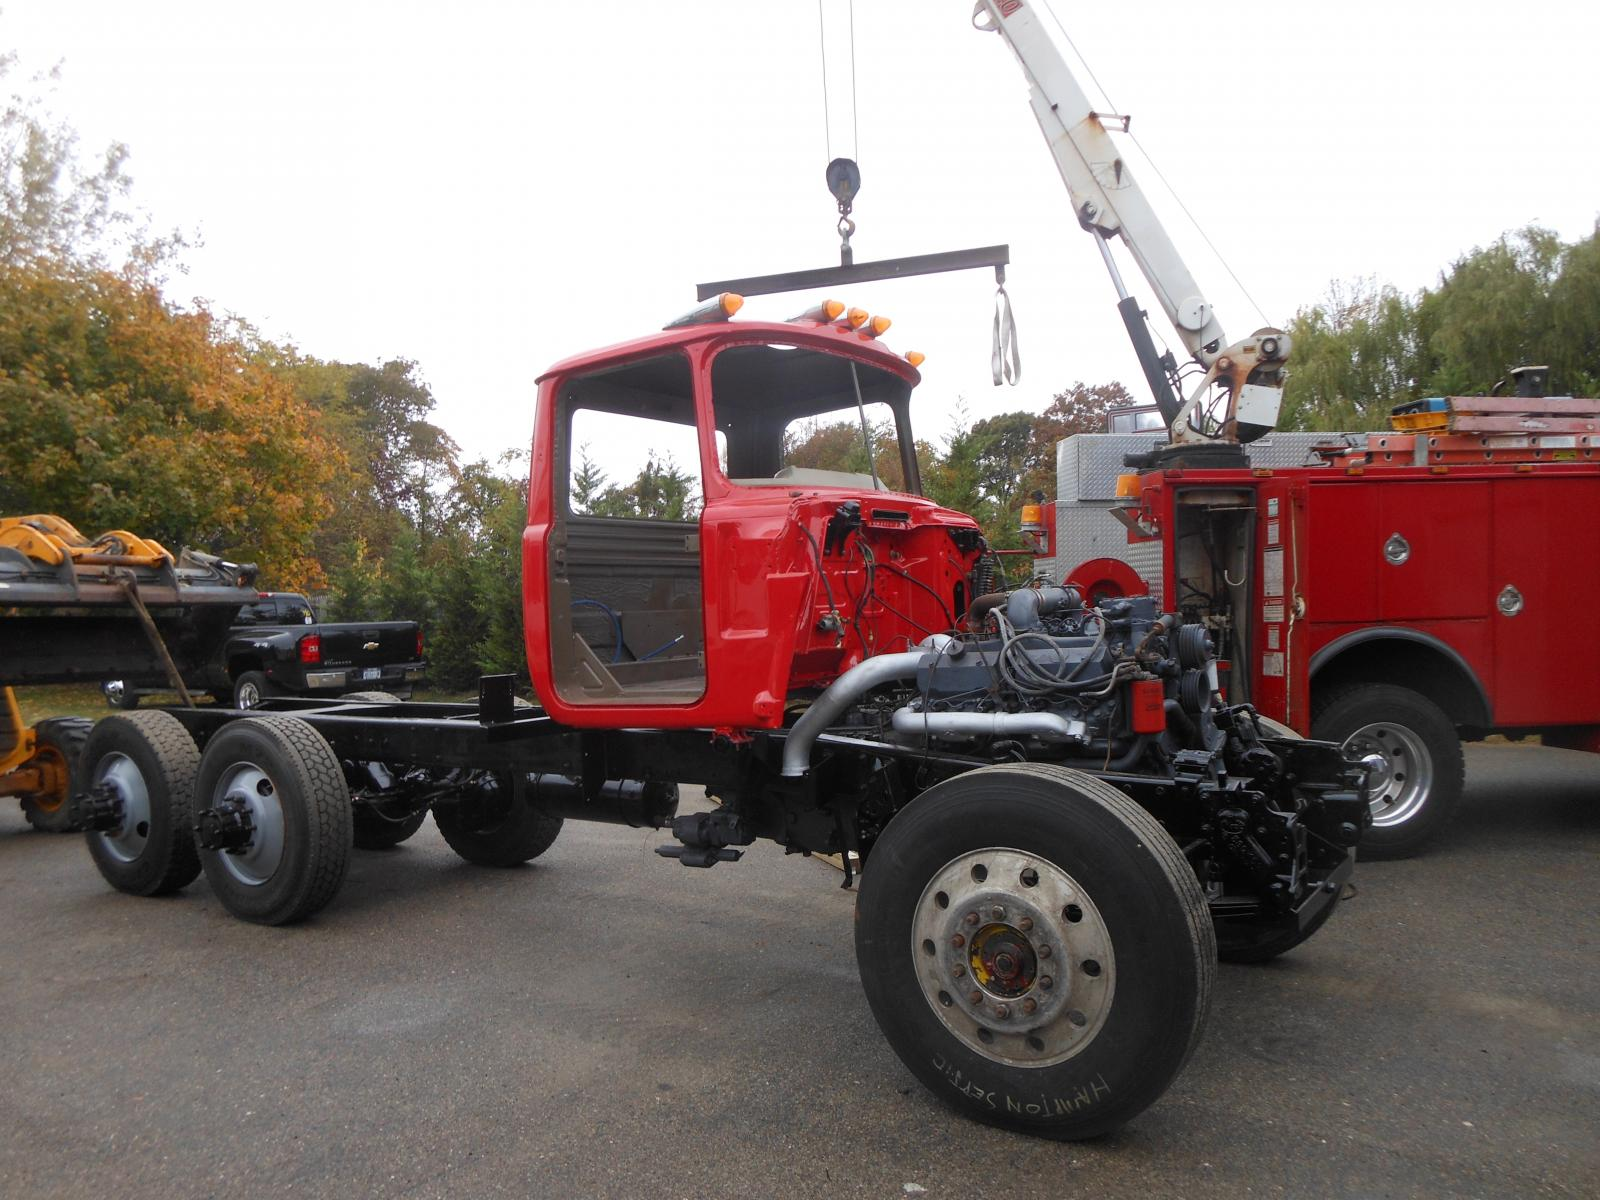 78 r700 tractor - antique and classic mack trucks general discussion